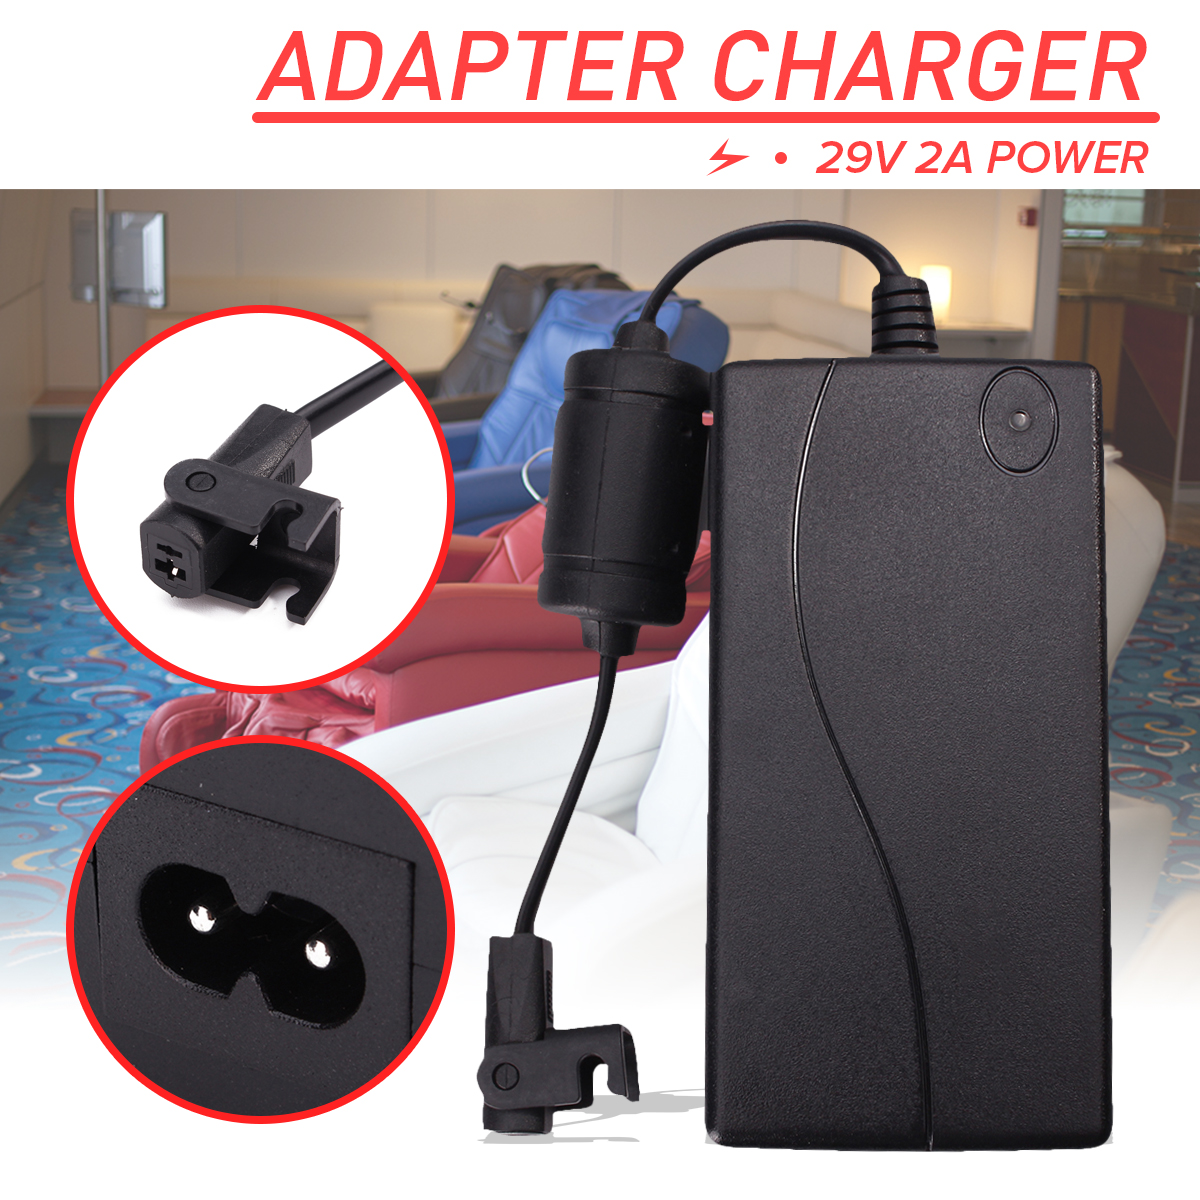 29V 2A AC/DC Power Supply For Recliner Sofa Chair Adapter Charger Switching Transformer LIKE OKIN for Overload Protection29V 2A AC/DC Power Supply For Recliner Sofa Chair Adapter Charger Switching Transformer LIKE OKIN for Overload Protection